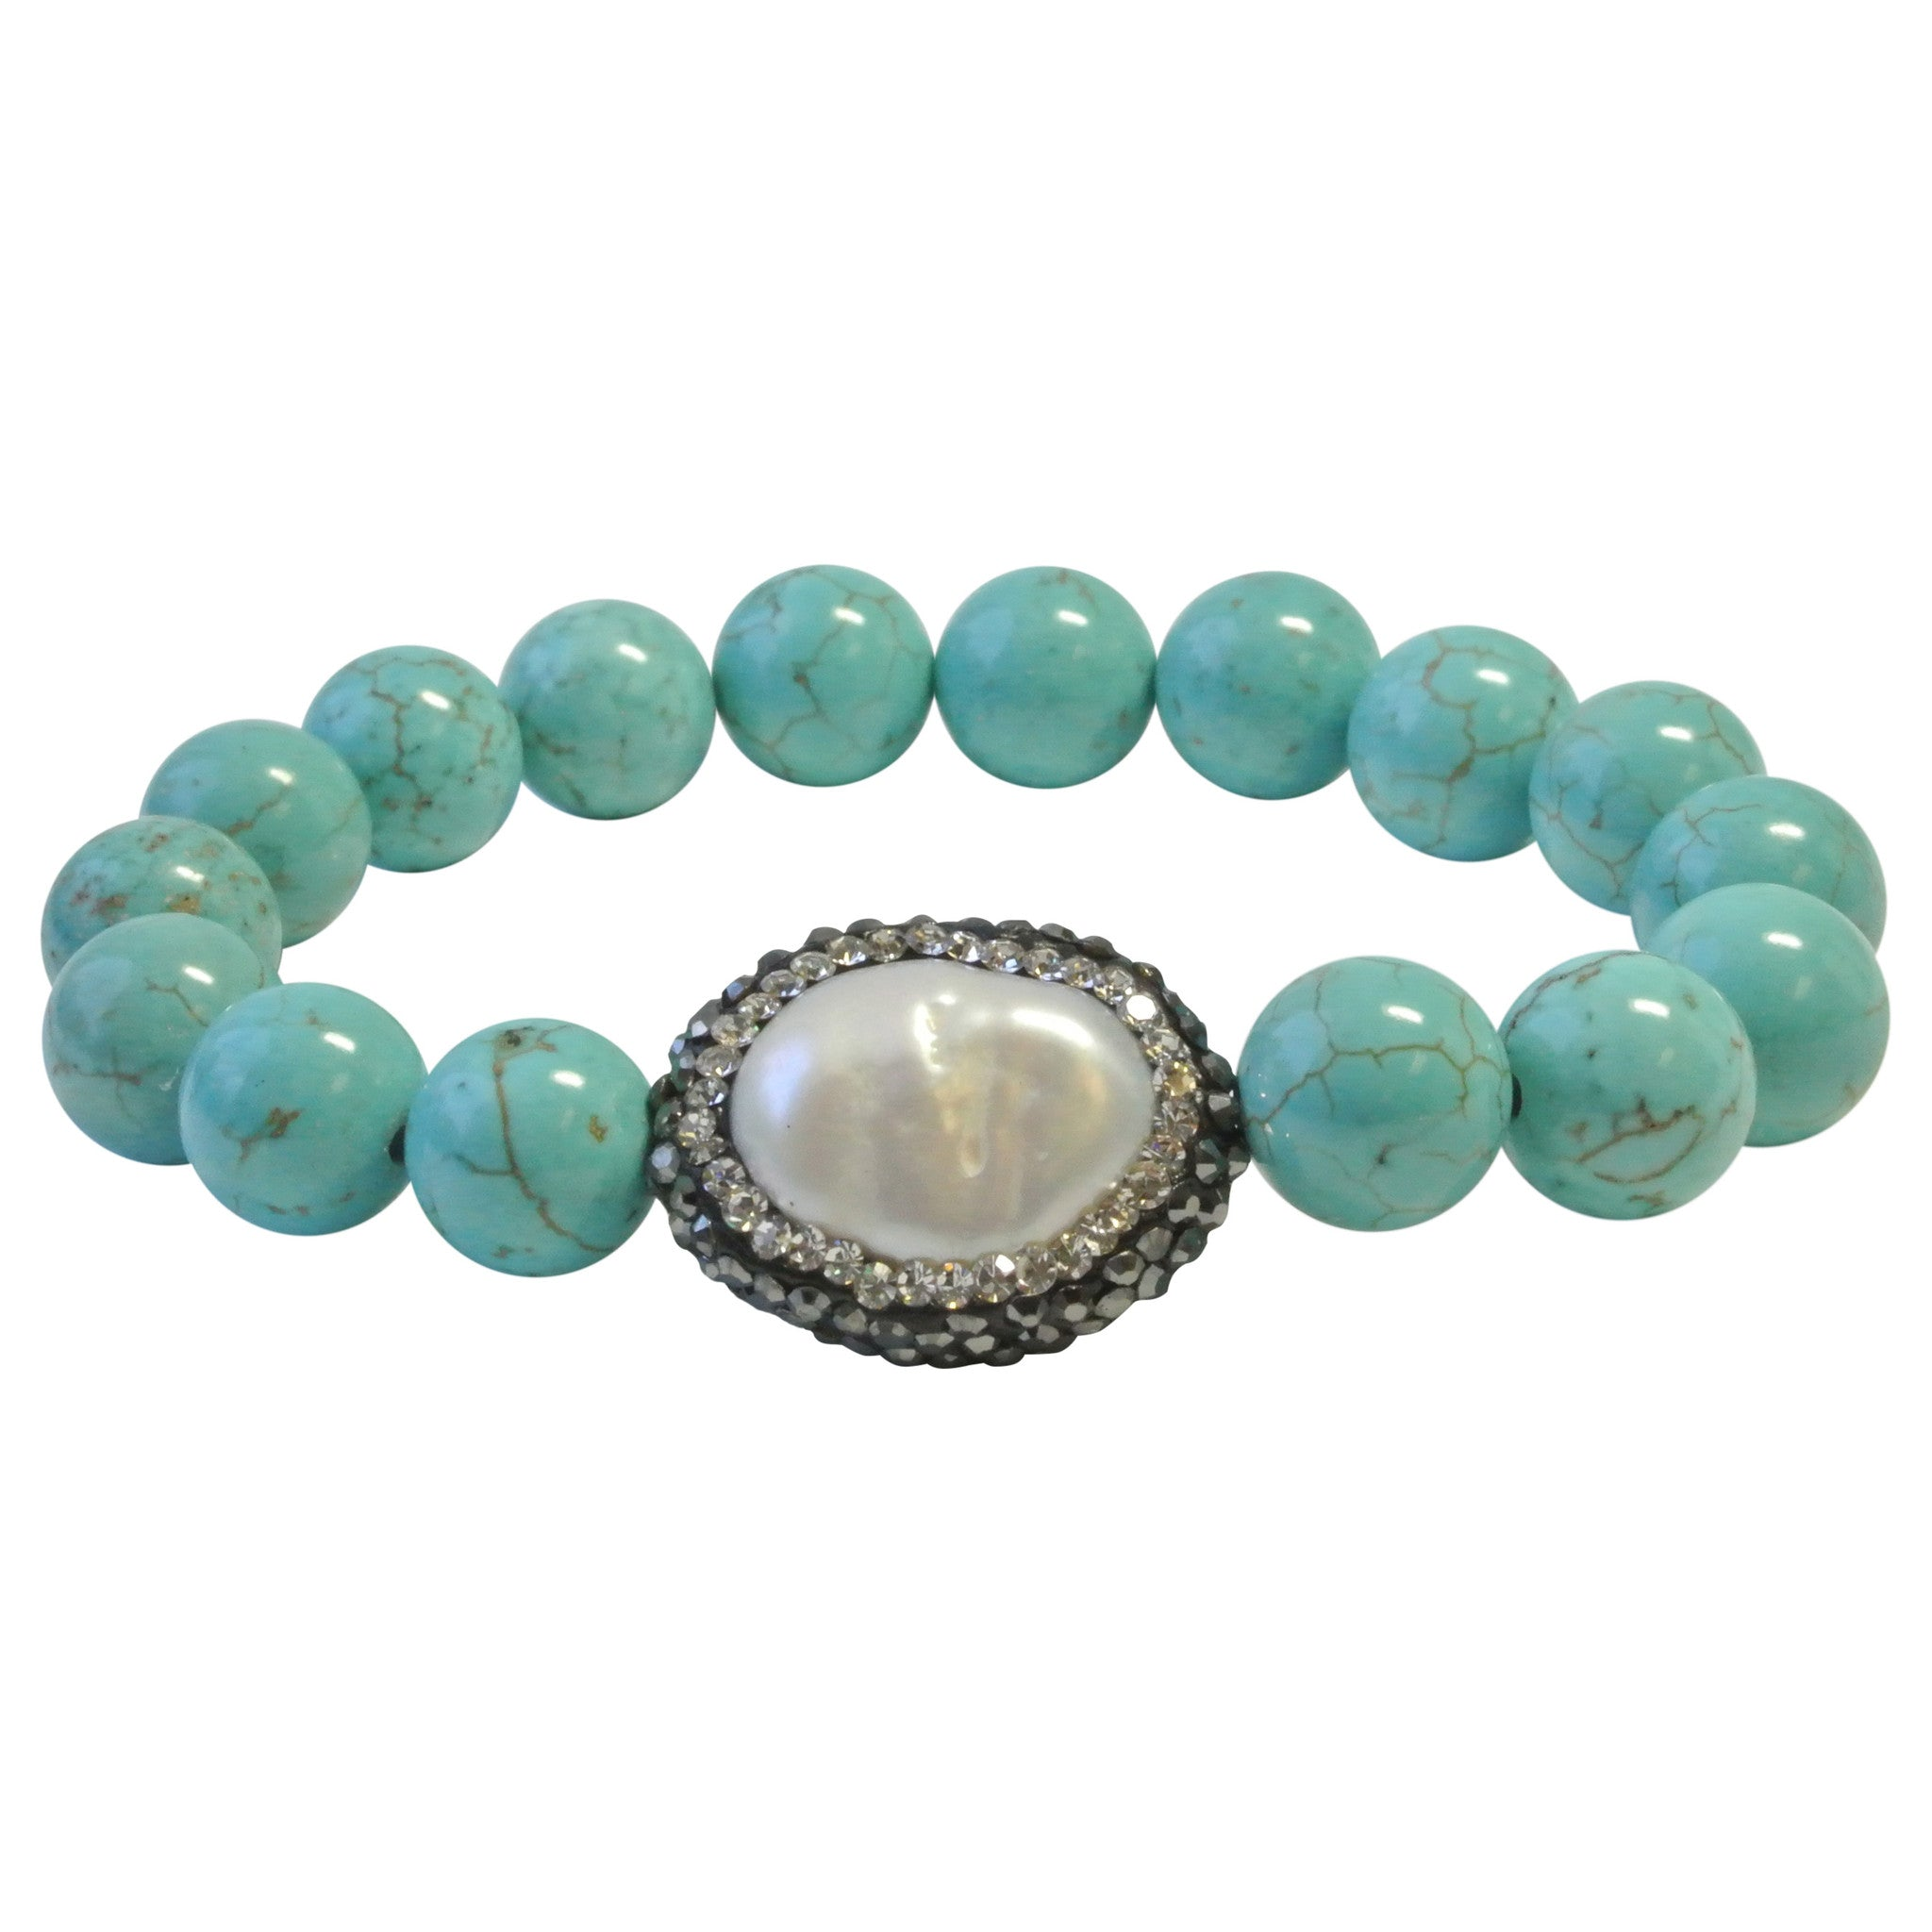 dp campaign jewelry lung in hollow or support by awareness hidden amazon white fundraising pearl bracelet cancer com